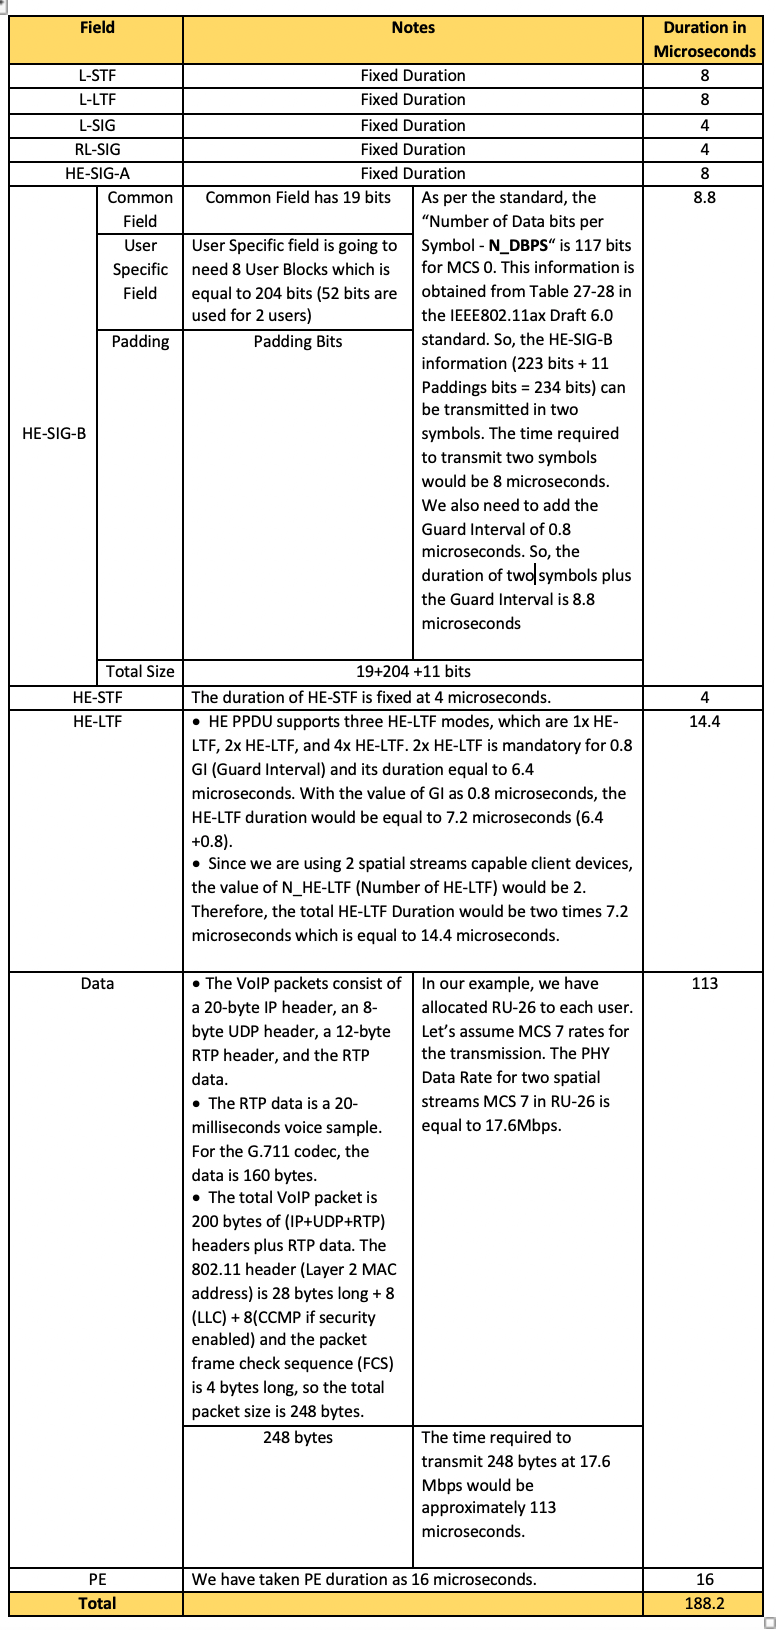 Table 1: Duration calculation for transmitting the OFDMA frame